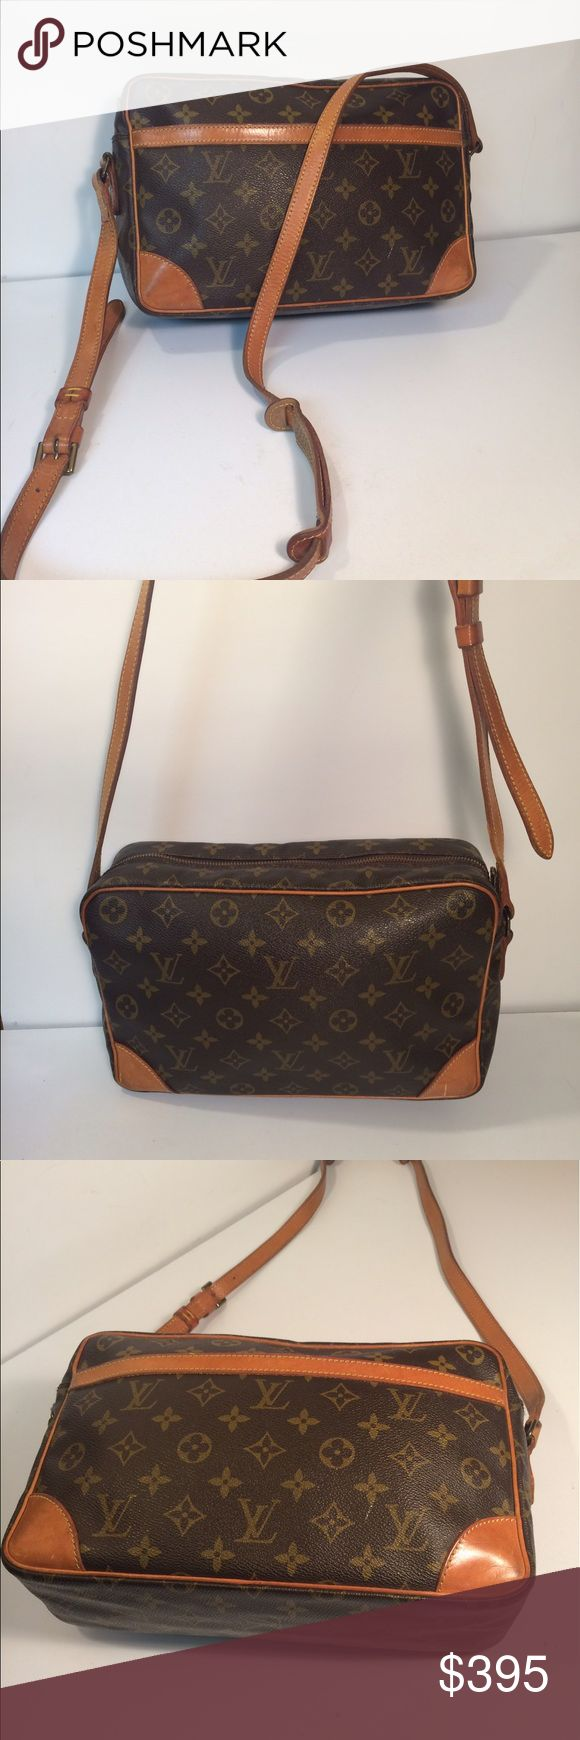 """Louis Vuitton Trocadero Cross Body Shoulder Bag Louis Vuitton Trocadero Cross Body Shoulder Bag ... Date code: TH872 ... Length: 12"""" ... Height: 8"""" ... Width: 3"""" ... Shoulder drop: 23"""" ... Features: Adjustable shoulder strap ... Top zippered closure ... Exterior slip pocket ... Zippered interior pocket ... Condition: Normal sign of use ... Interior pocket lining wear ... Guaranteed Authentic. Louis Vuitton Bags Crossbody Bags"""